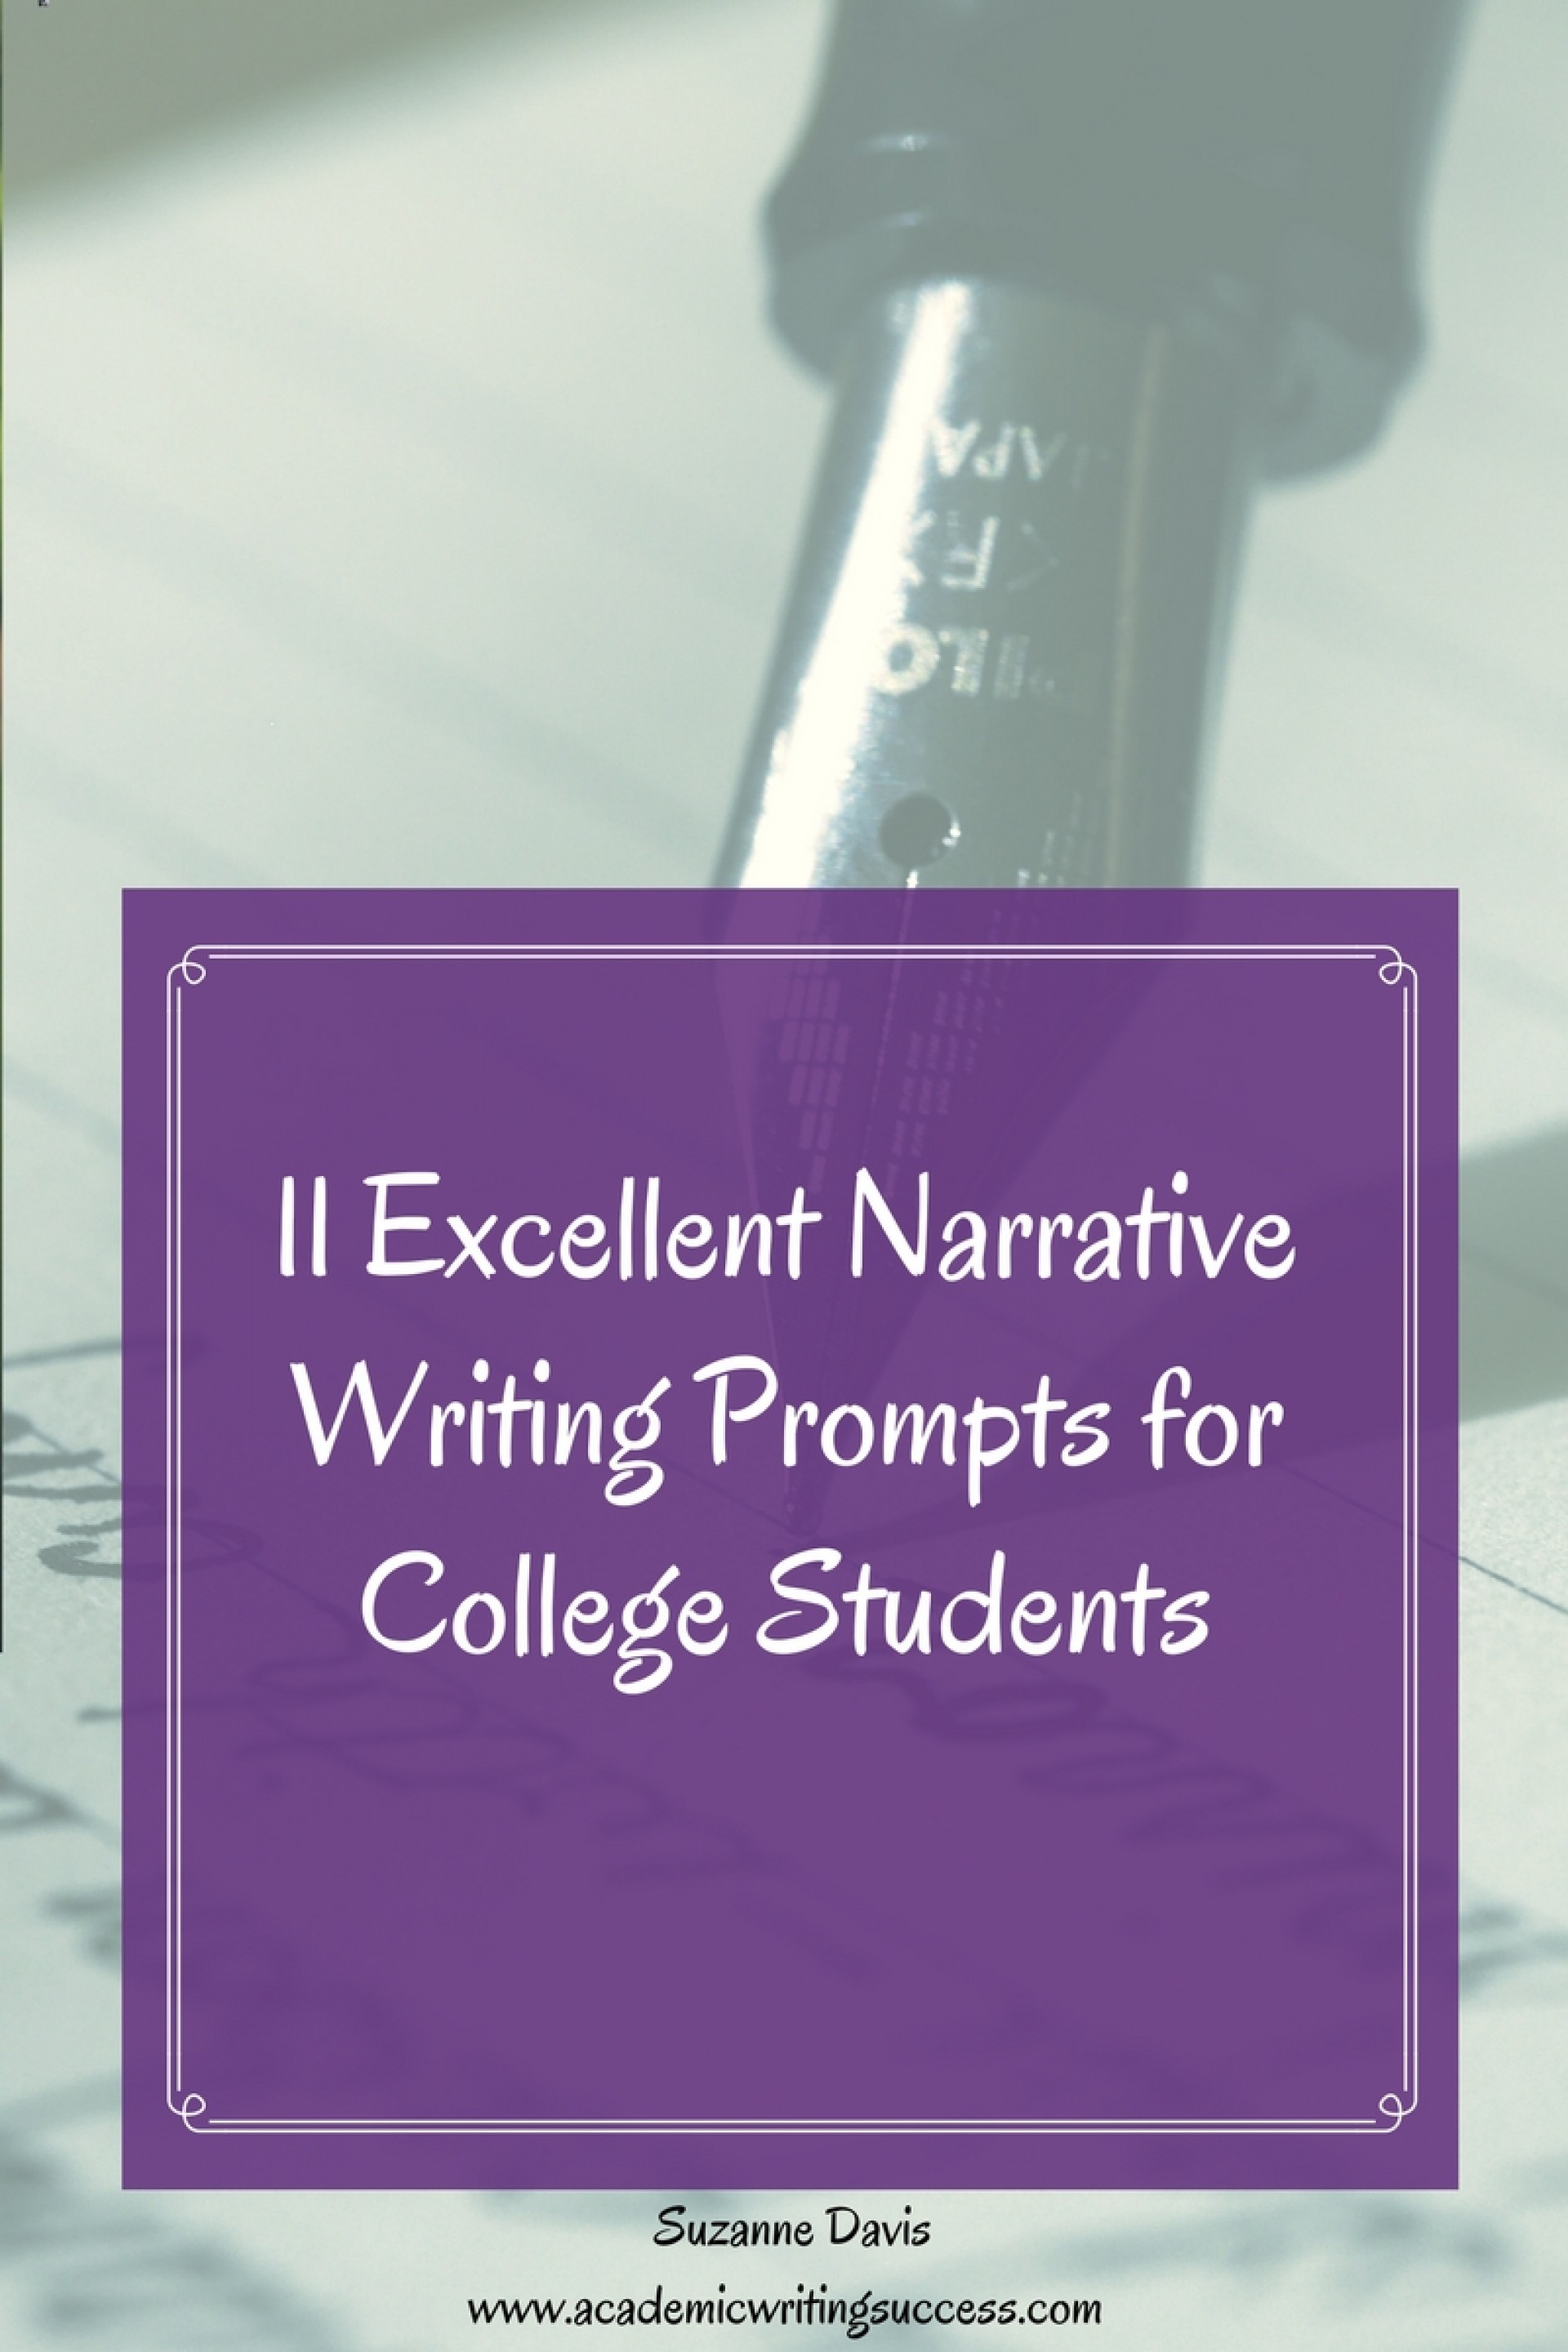 013 Excellent Narrative Writing Prompts For College Students Personal Essay Beautiful 3rd Grade Ks1 Ks2 1920